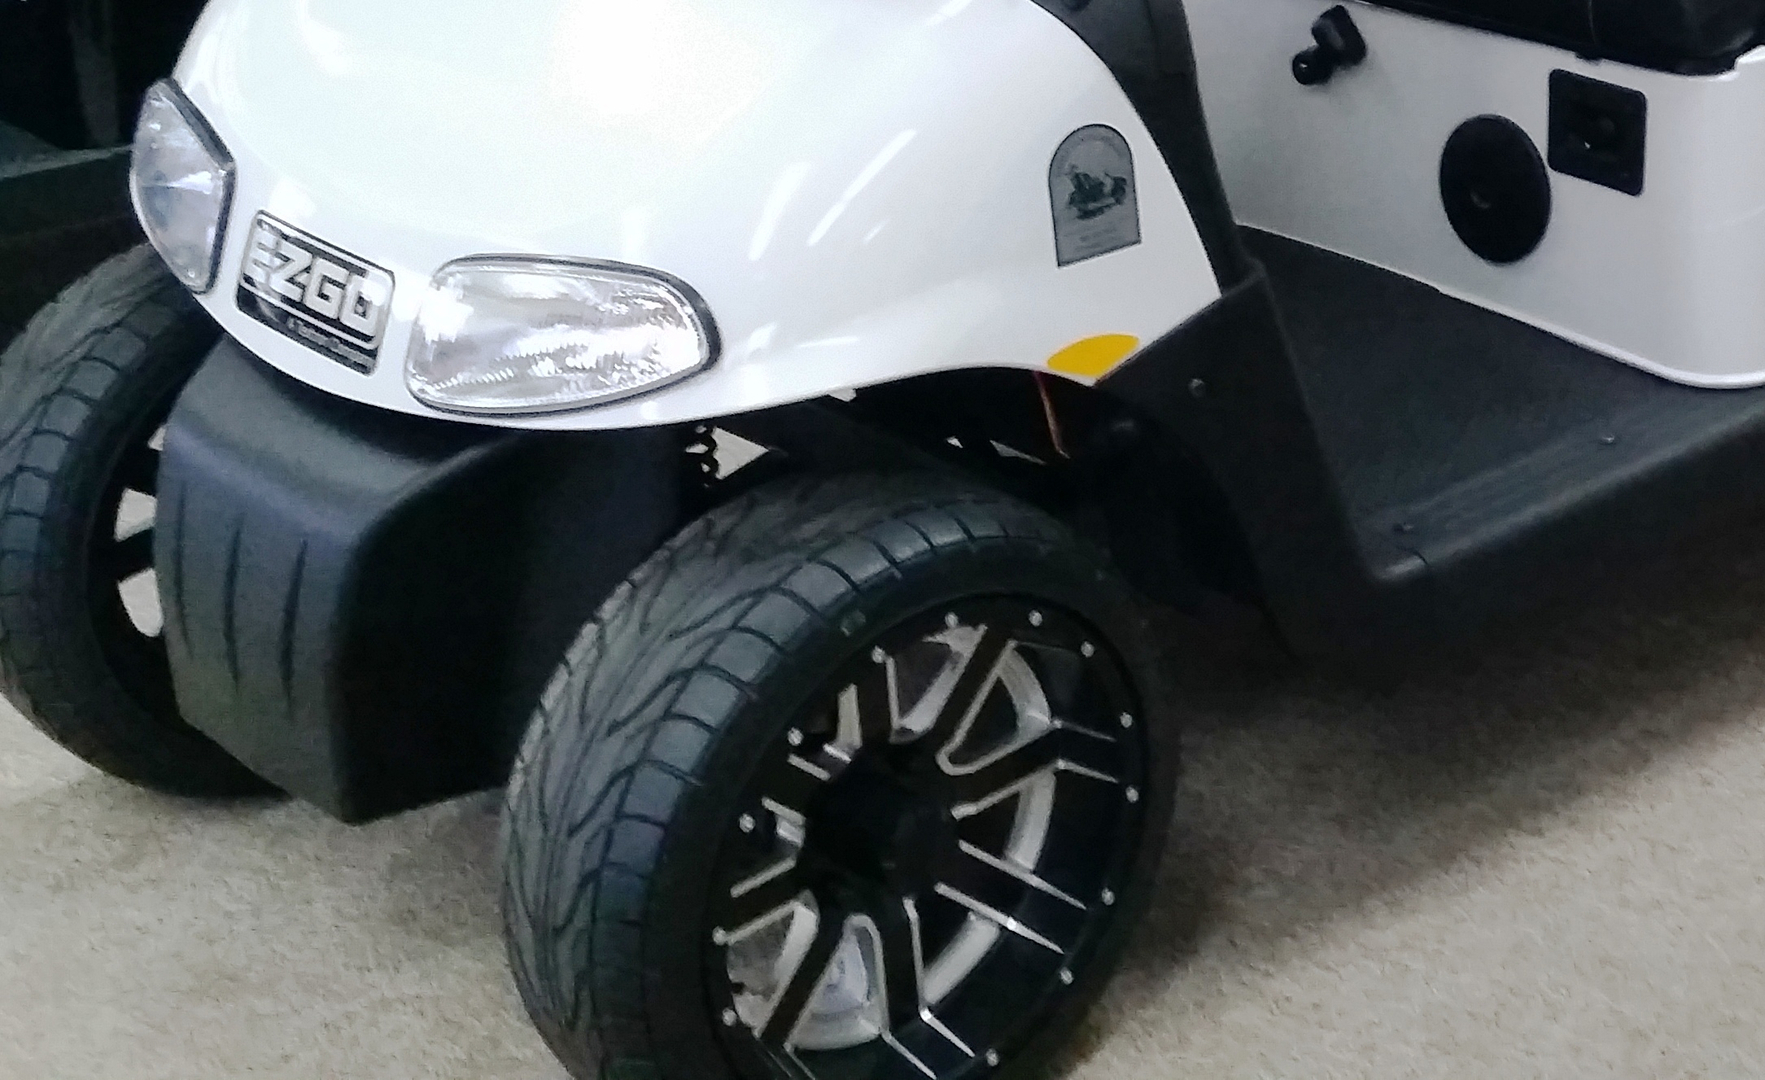 Accessories & Parts on car rims, golf carts lifted with exhaust, golf carts that are pink, golf carts with big wheels,